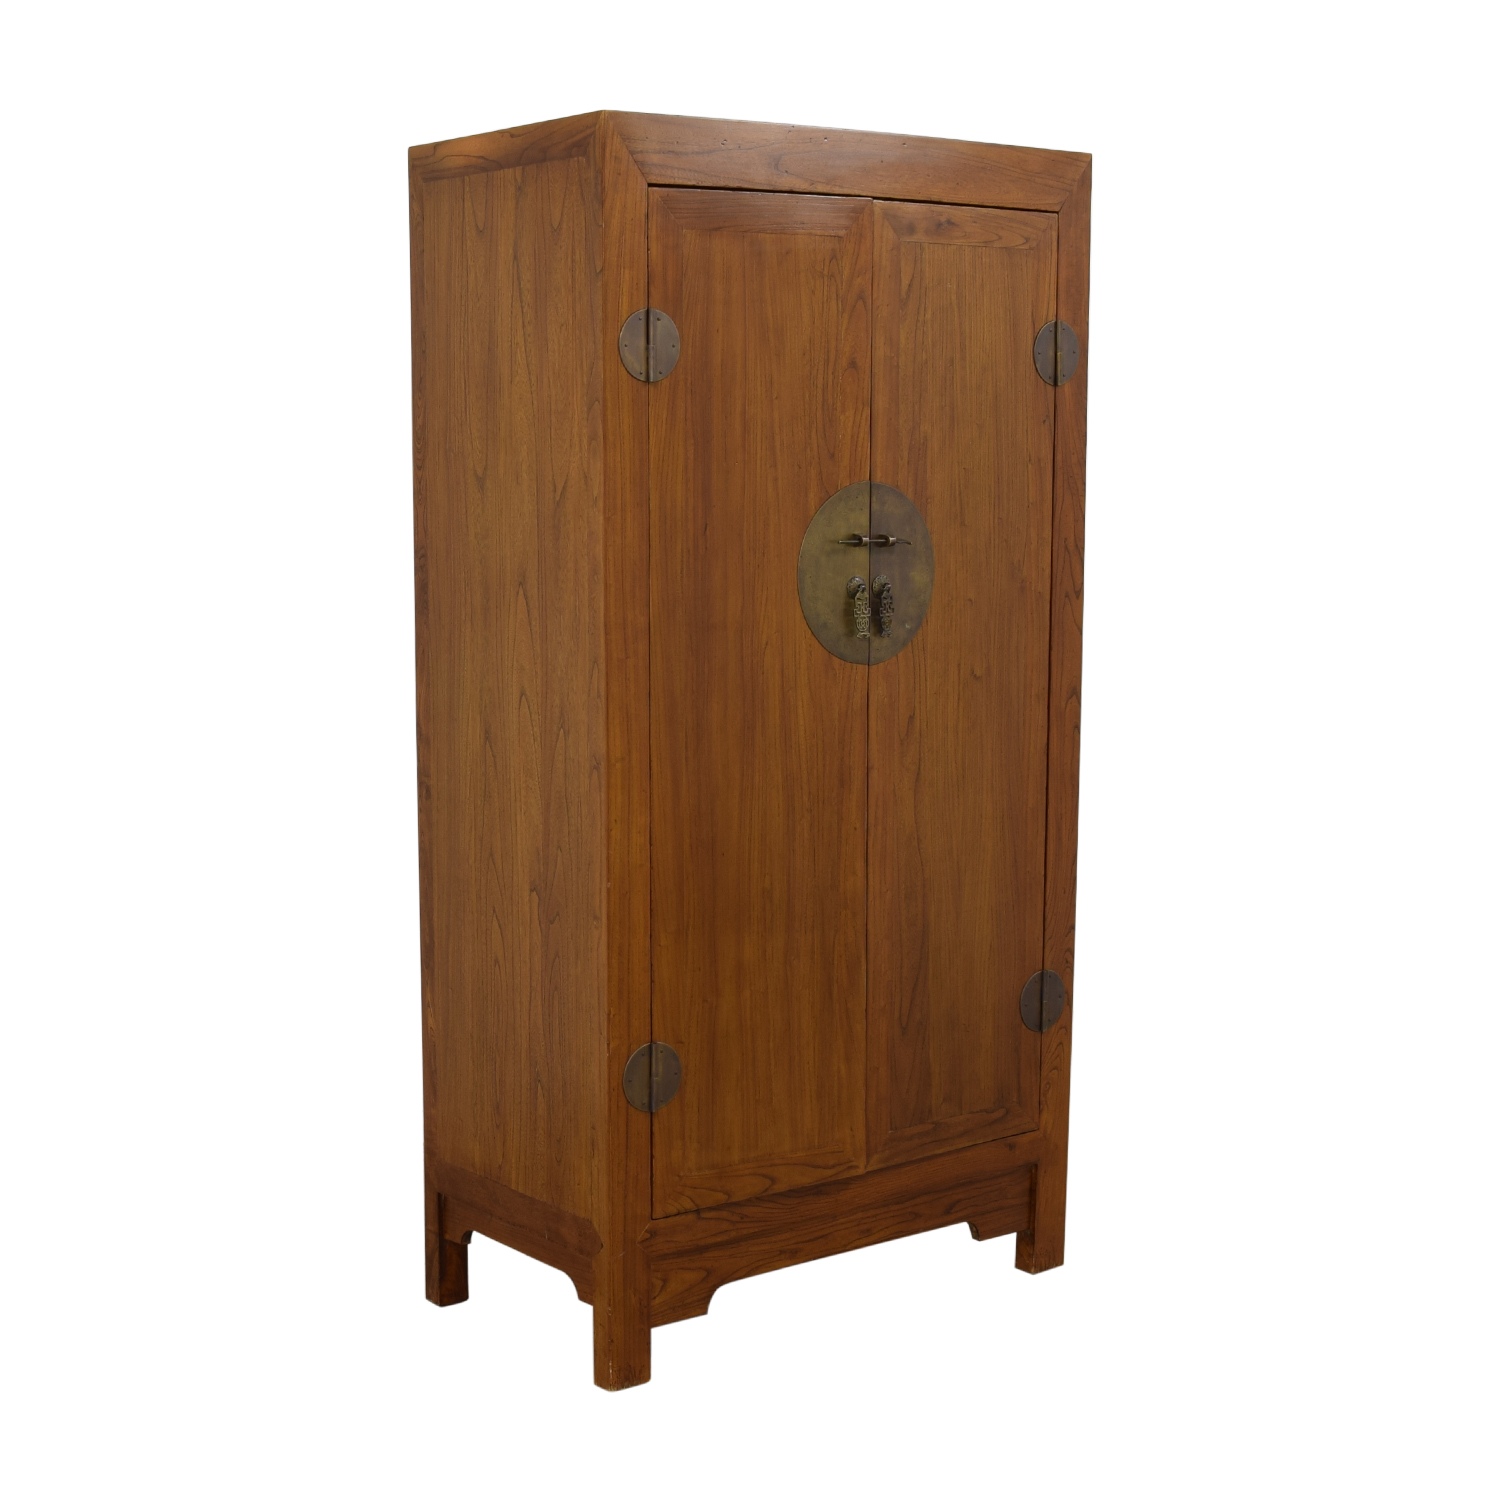 Two-Drawer Chinese Clothing or Media Armoire nj